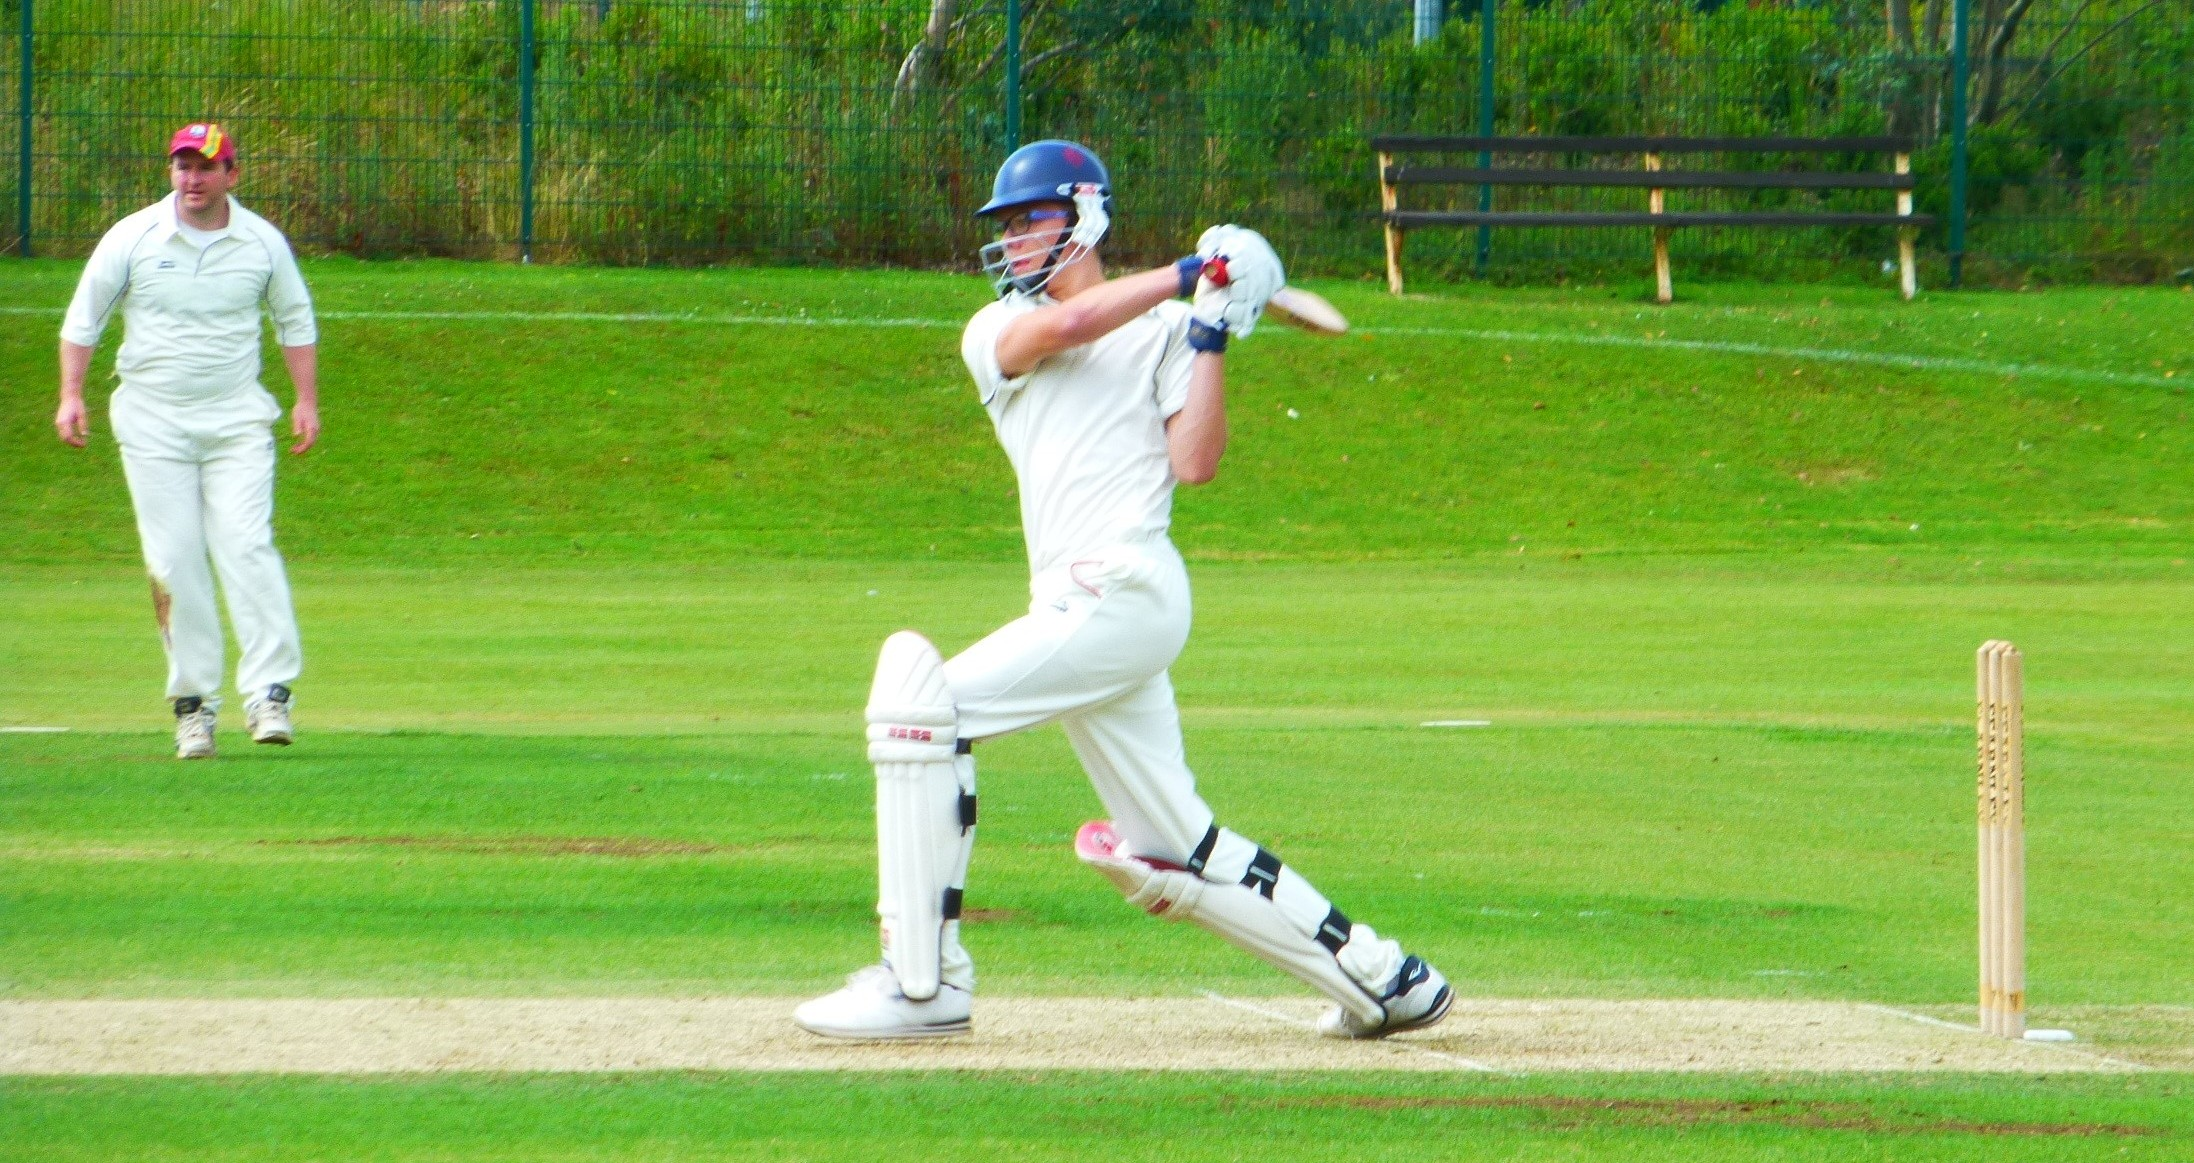 BATSMAN'S DEBUT: Dinas Powys Cricket Club 2nd XI debutant Jack Fleckney tries to up the scoring rate against Malpas.